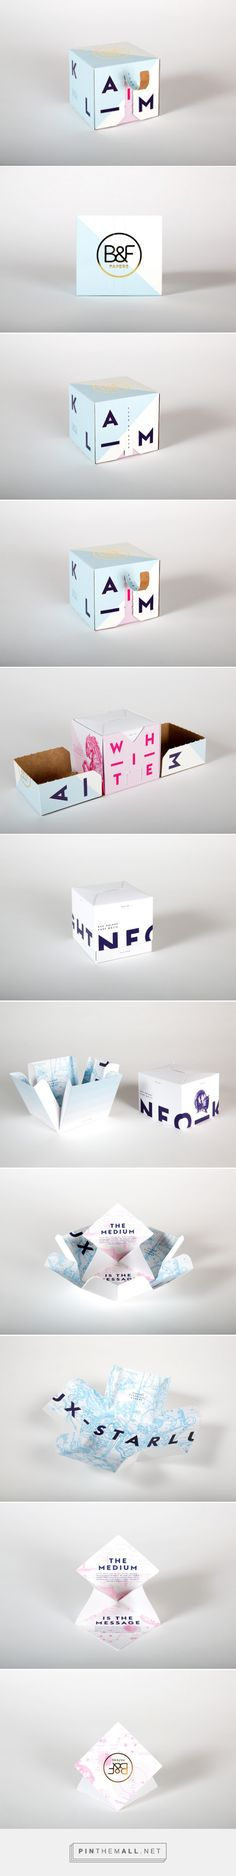 B&F Papers Packaging designed by Supply and THINK Packaging - http://www.packagingoftheworld.com/2015/10/b-papers-packaging-promotion-project.html